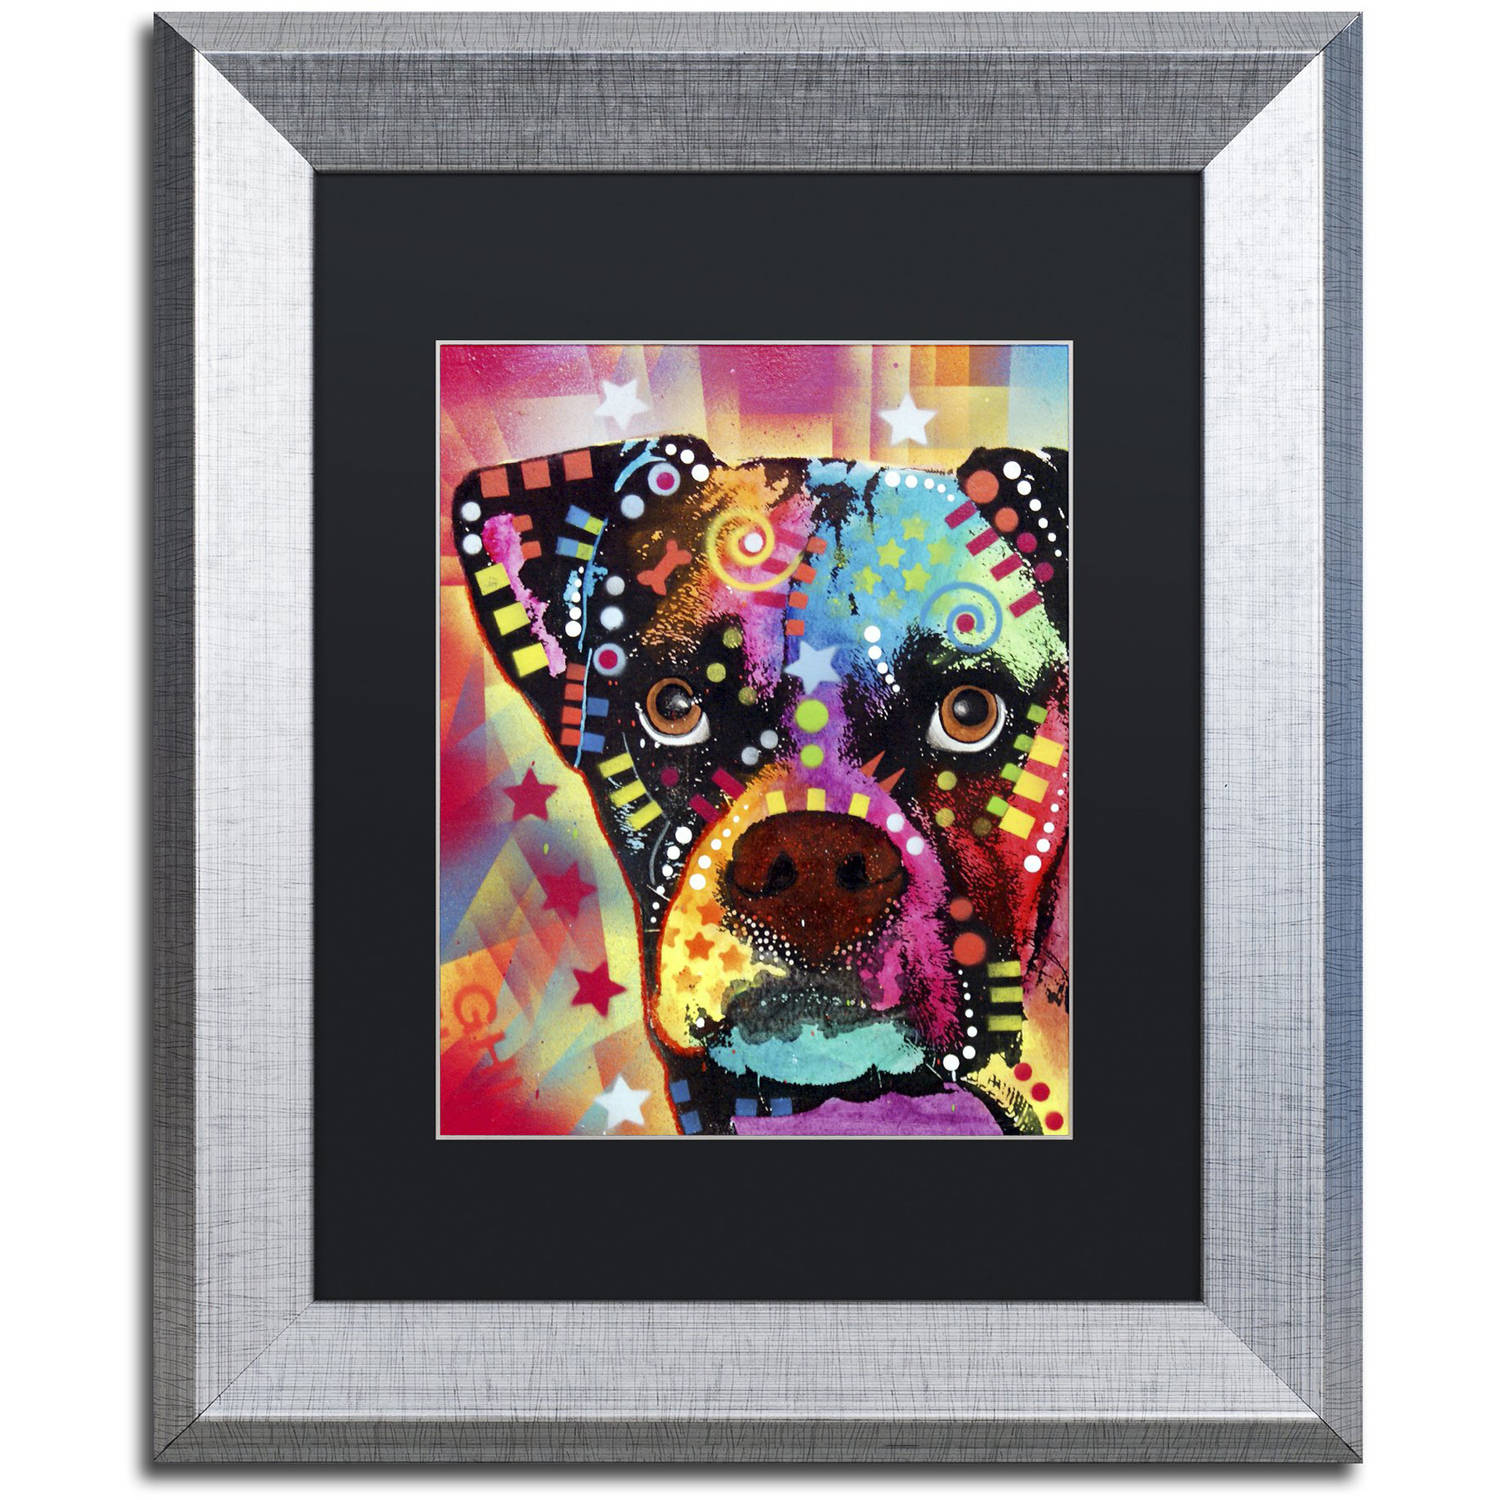 "Trademark Fine Art ""Boxer Cubism"" Canvas Art by Dean Russo, Black Matte, Silver Frame"